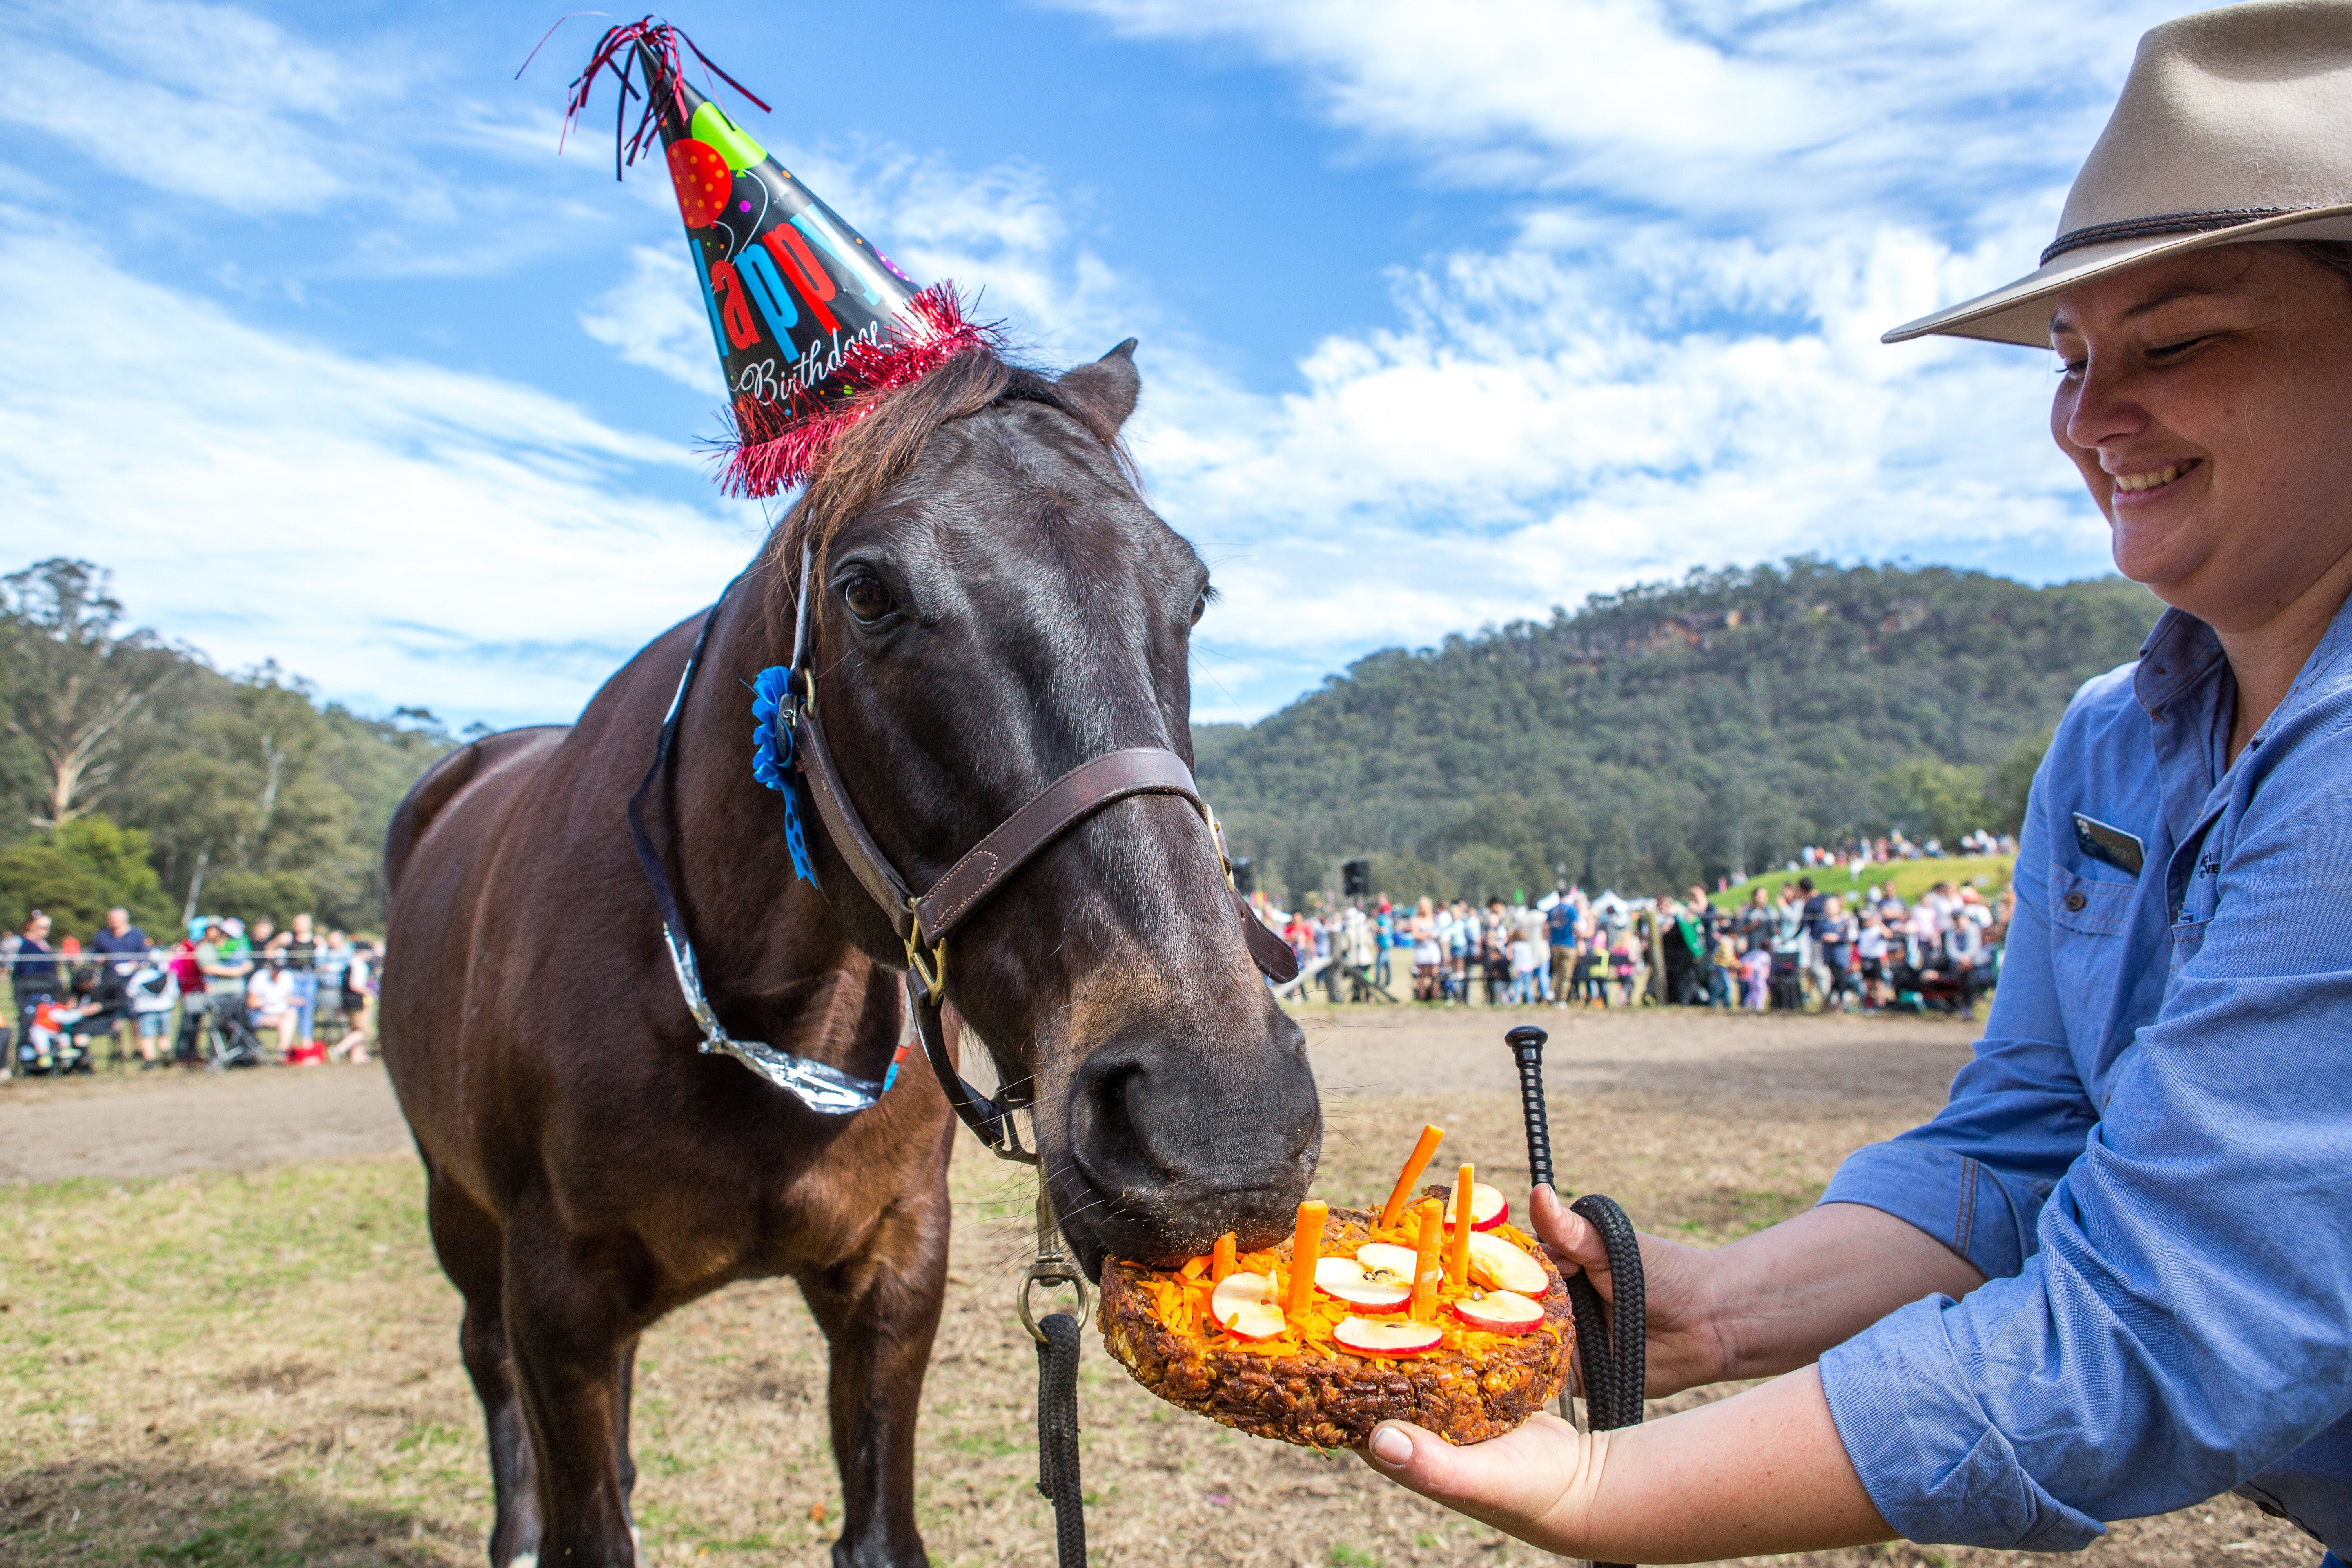 Horses Birthday Festival - Accommodation in Bendigo